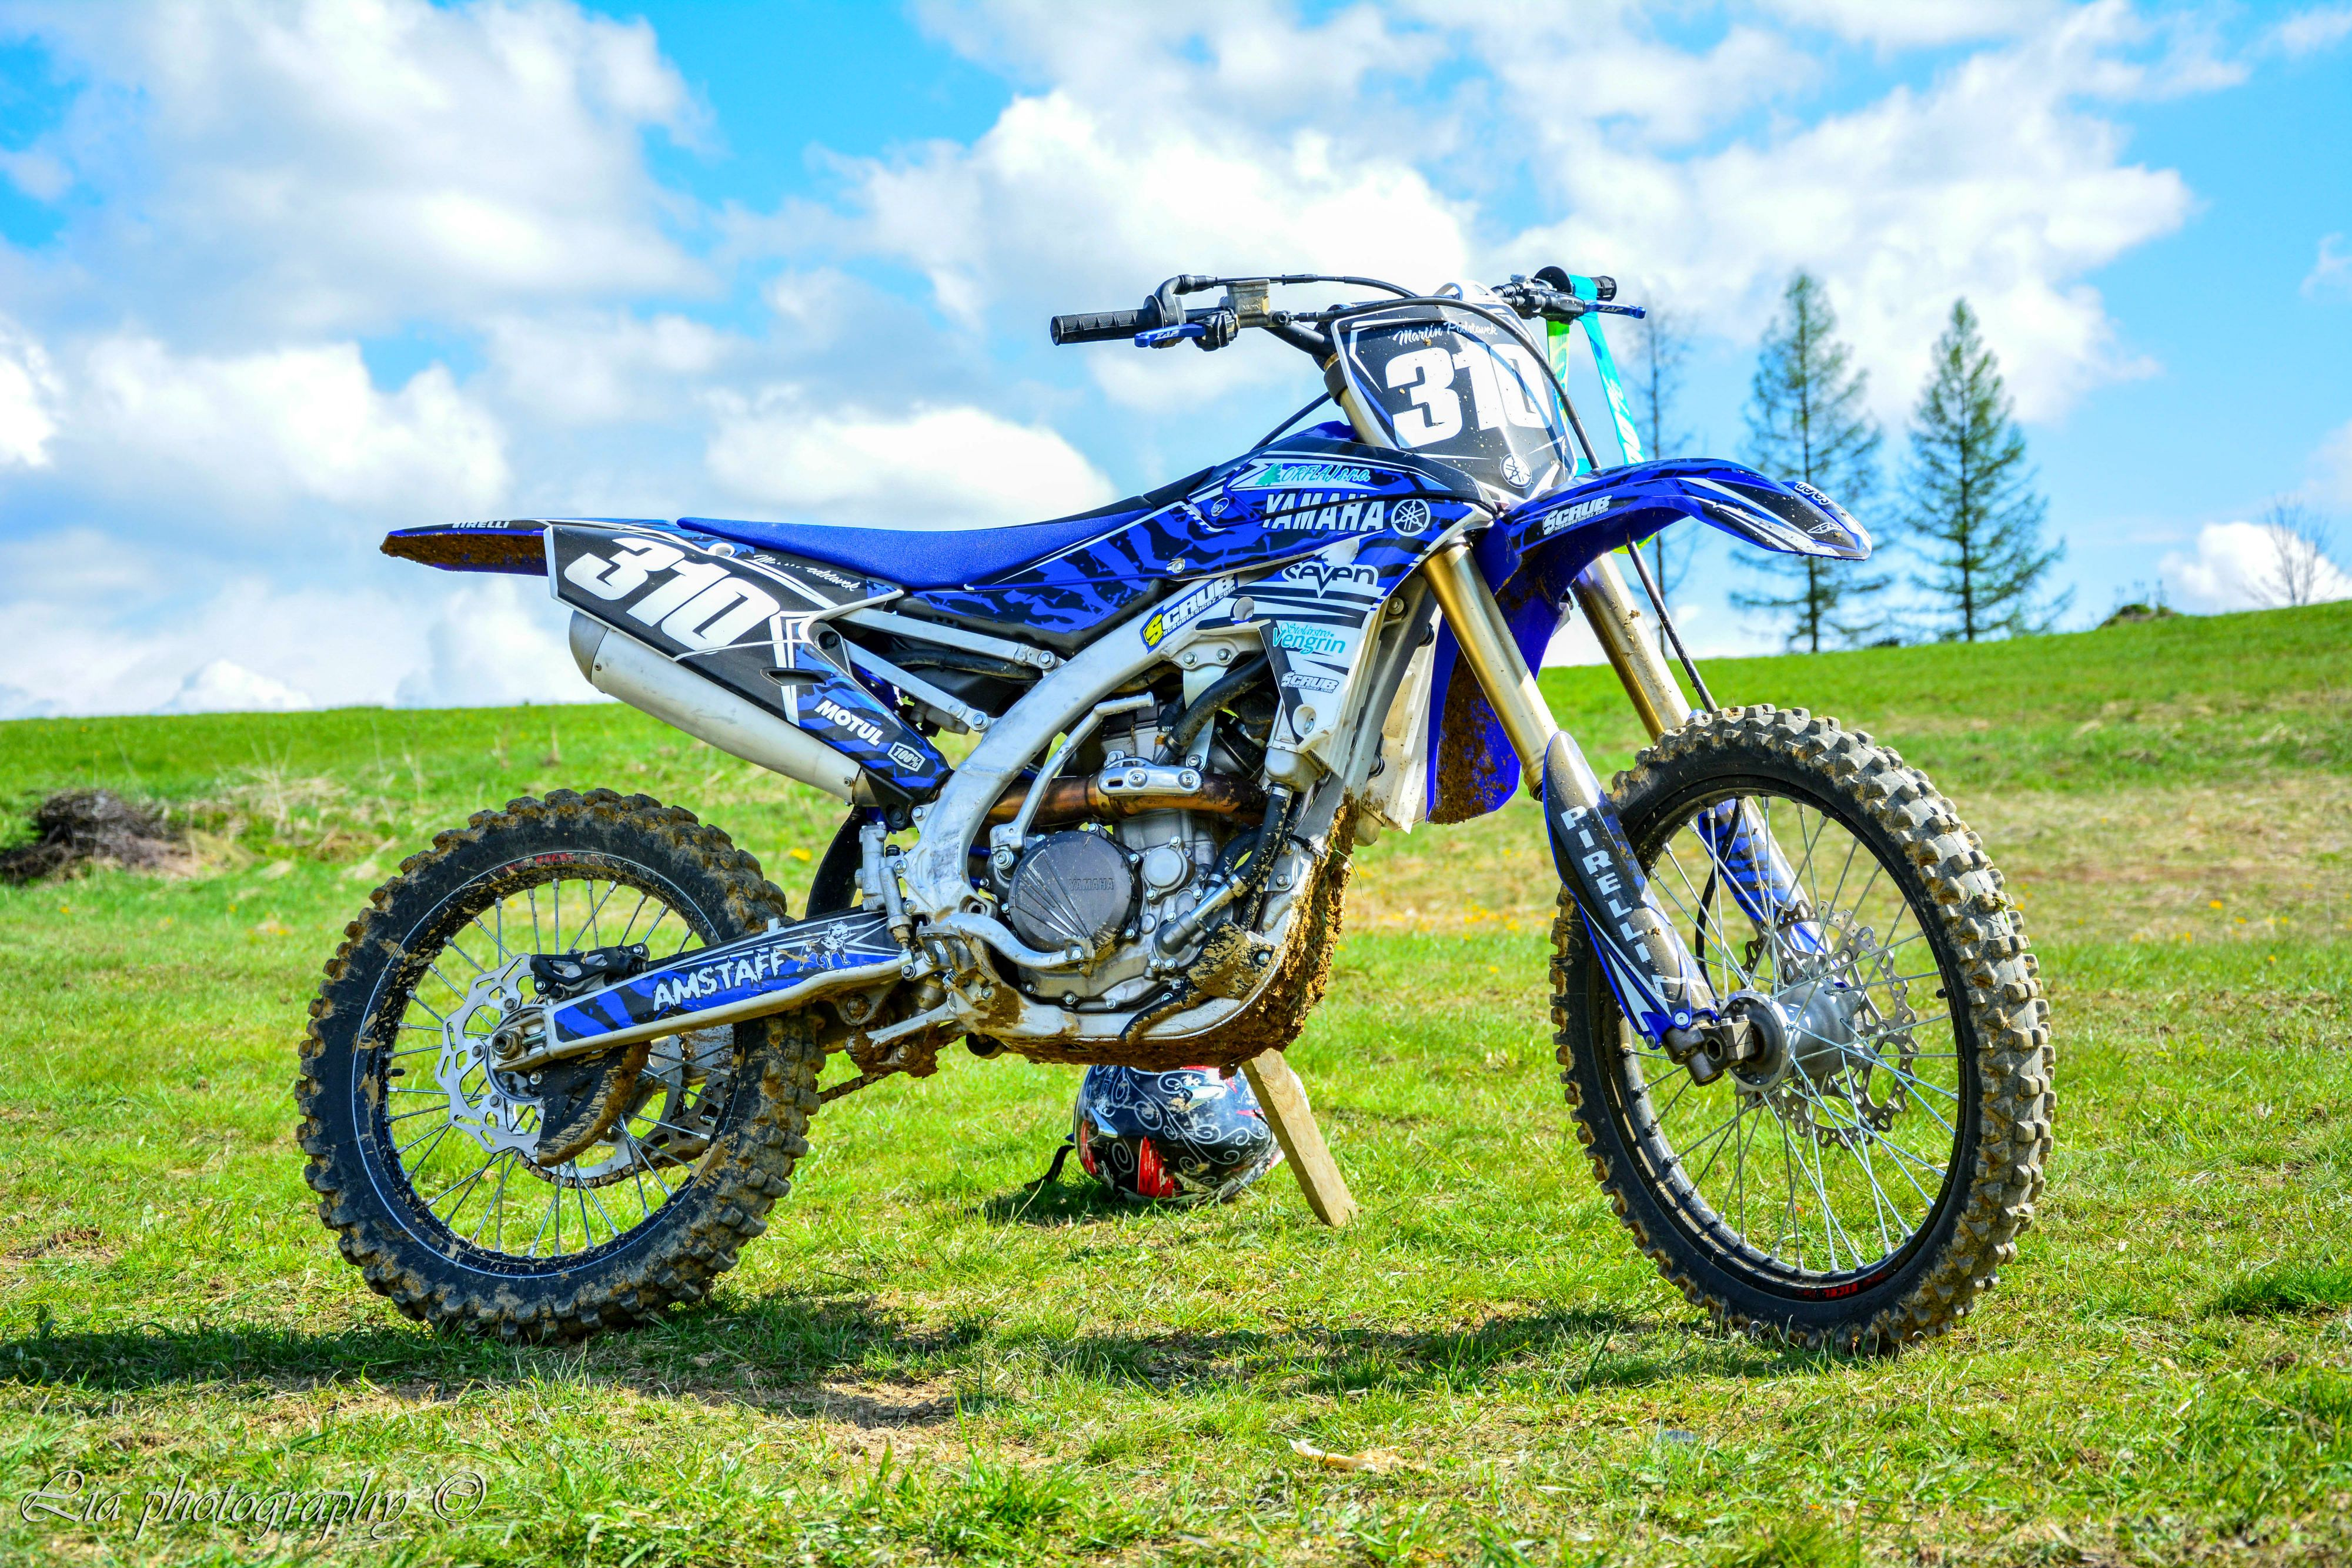 We Do Customization For Dirt Bikes This Is Very Beautiful Pic